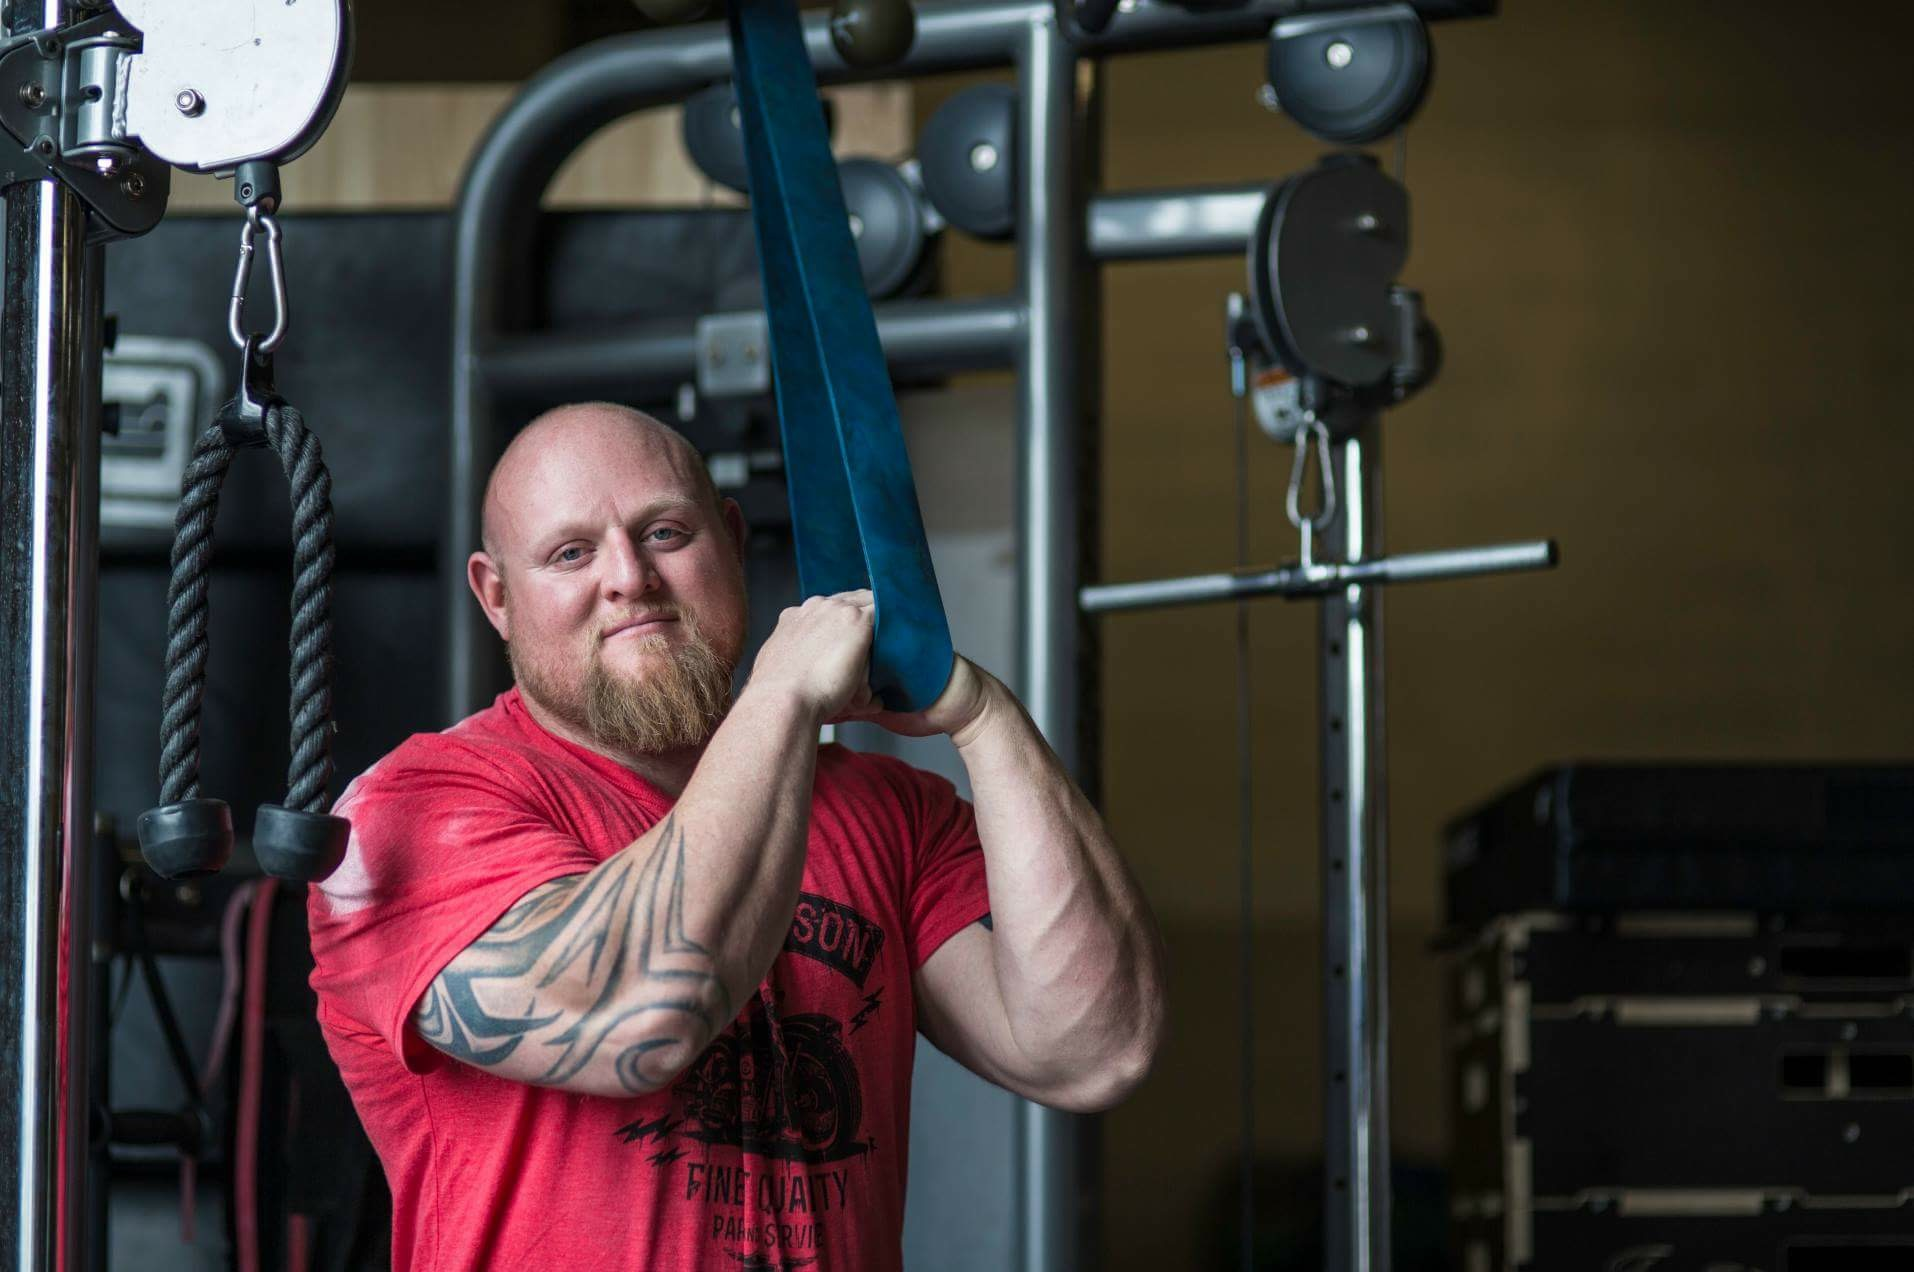 Wenning is a world-record holder powerlifter with a masters degree and an impressively short injury list in 20-plus years.